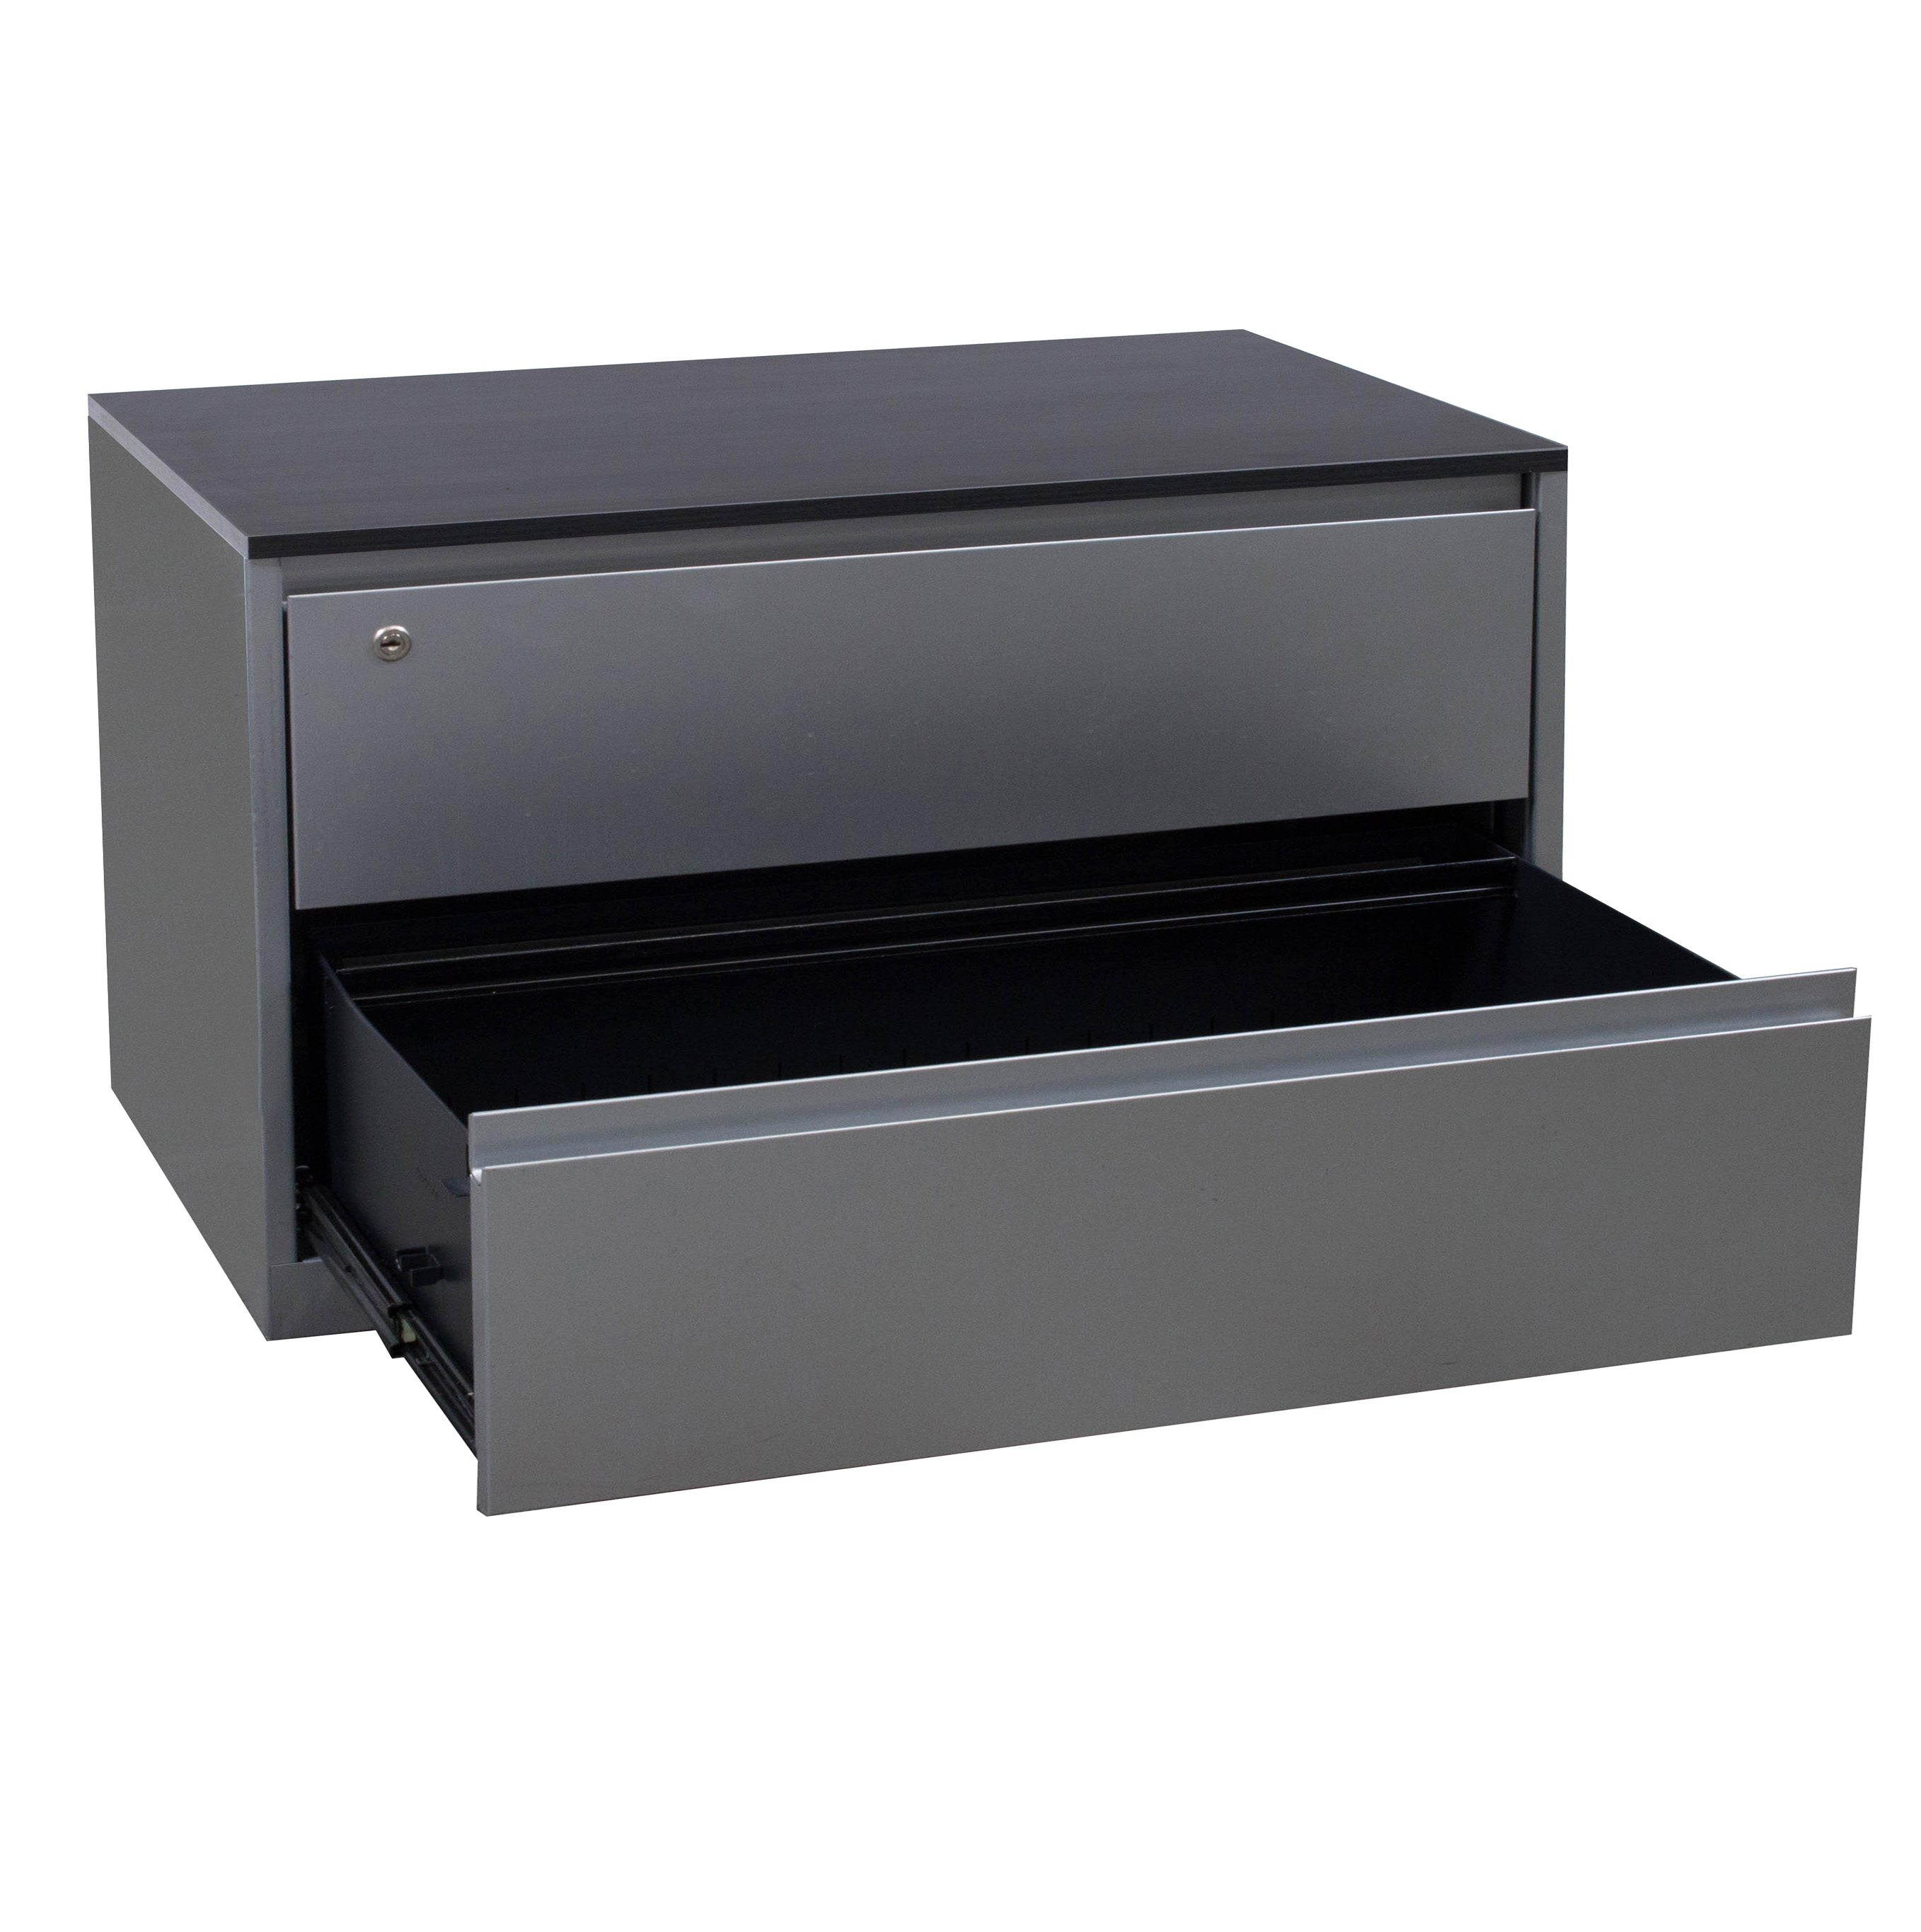 steelcase 900 series used 2 drawer lateral file with gray laminate top  silver